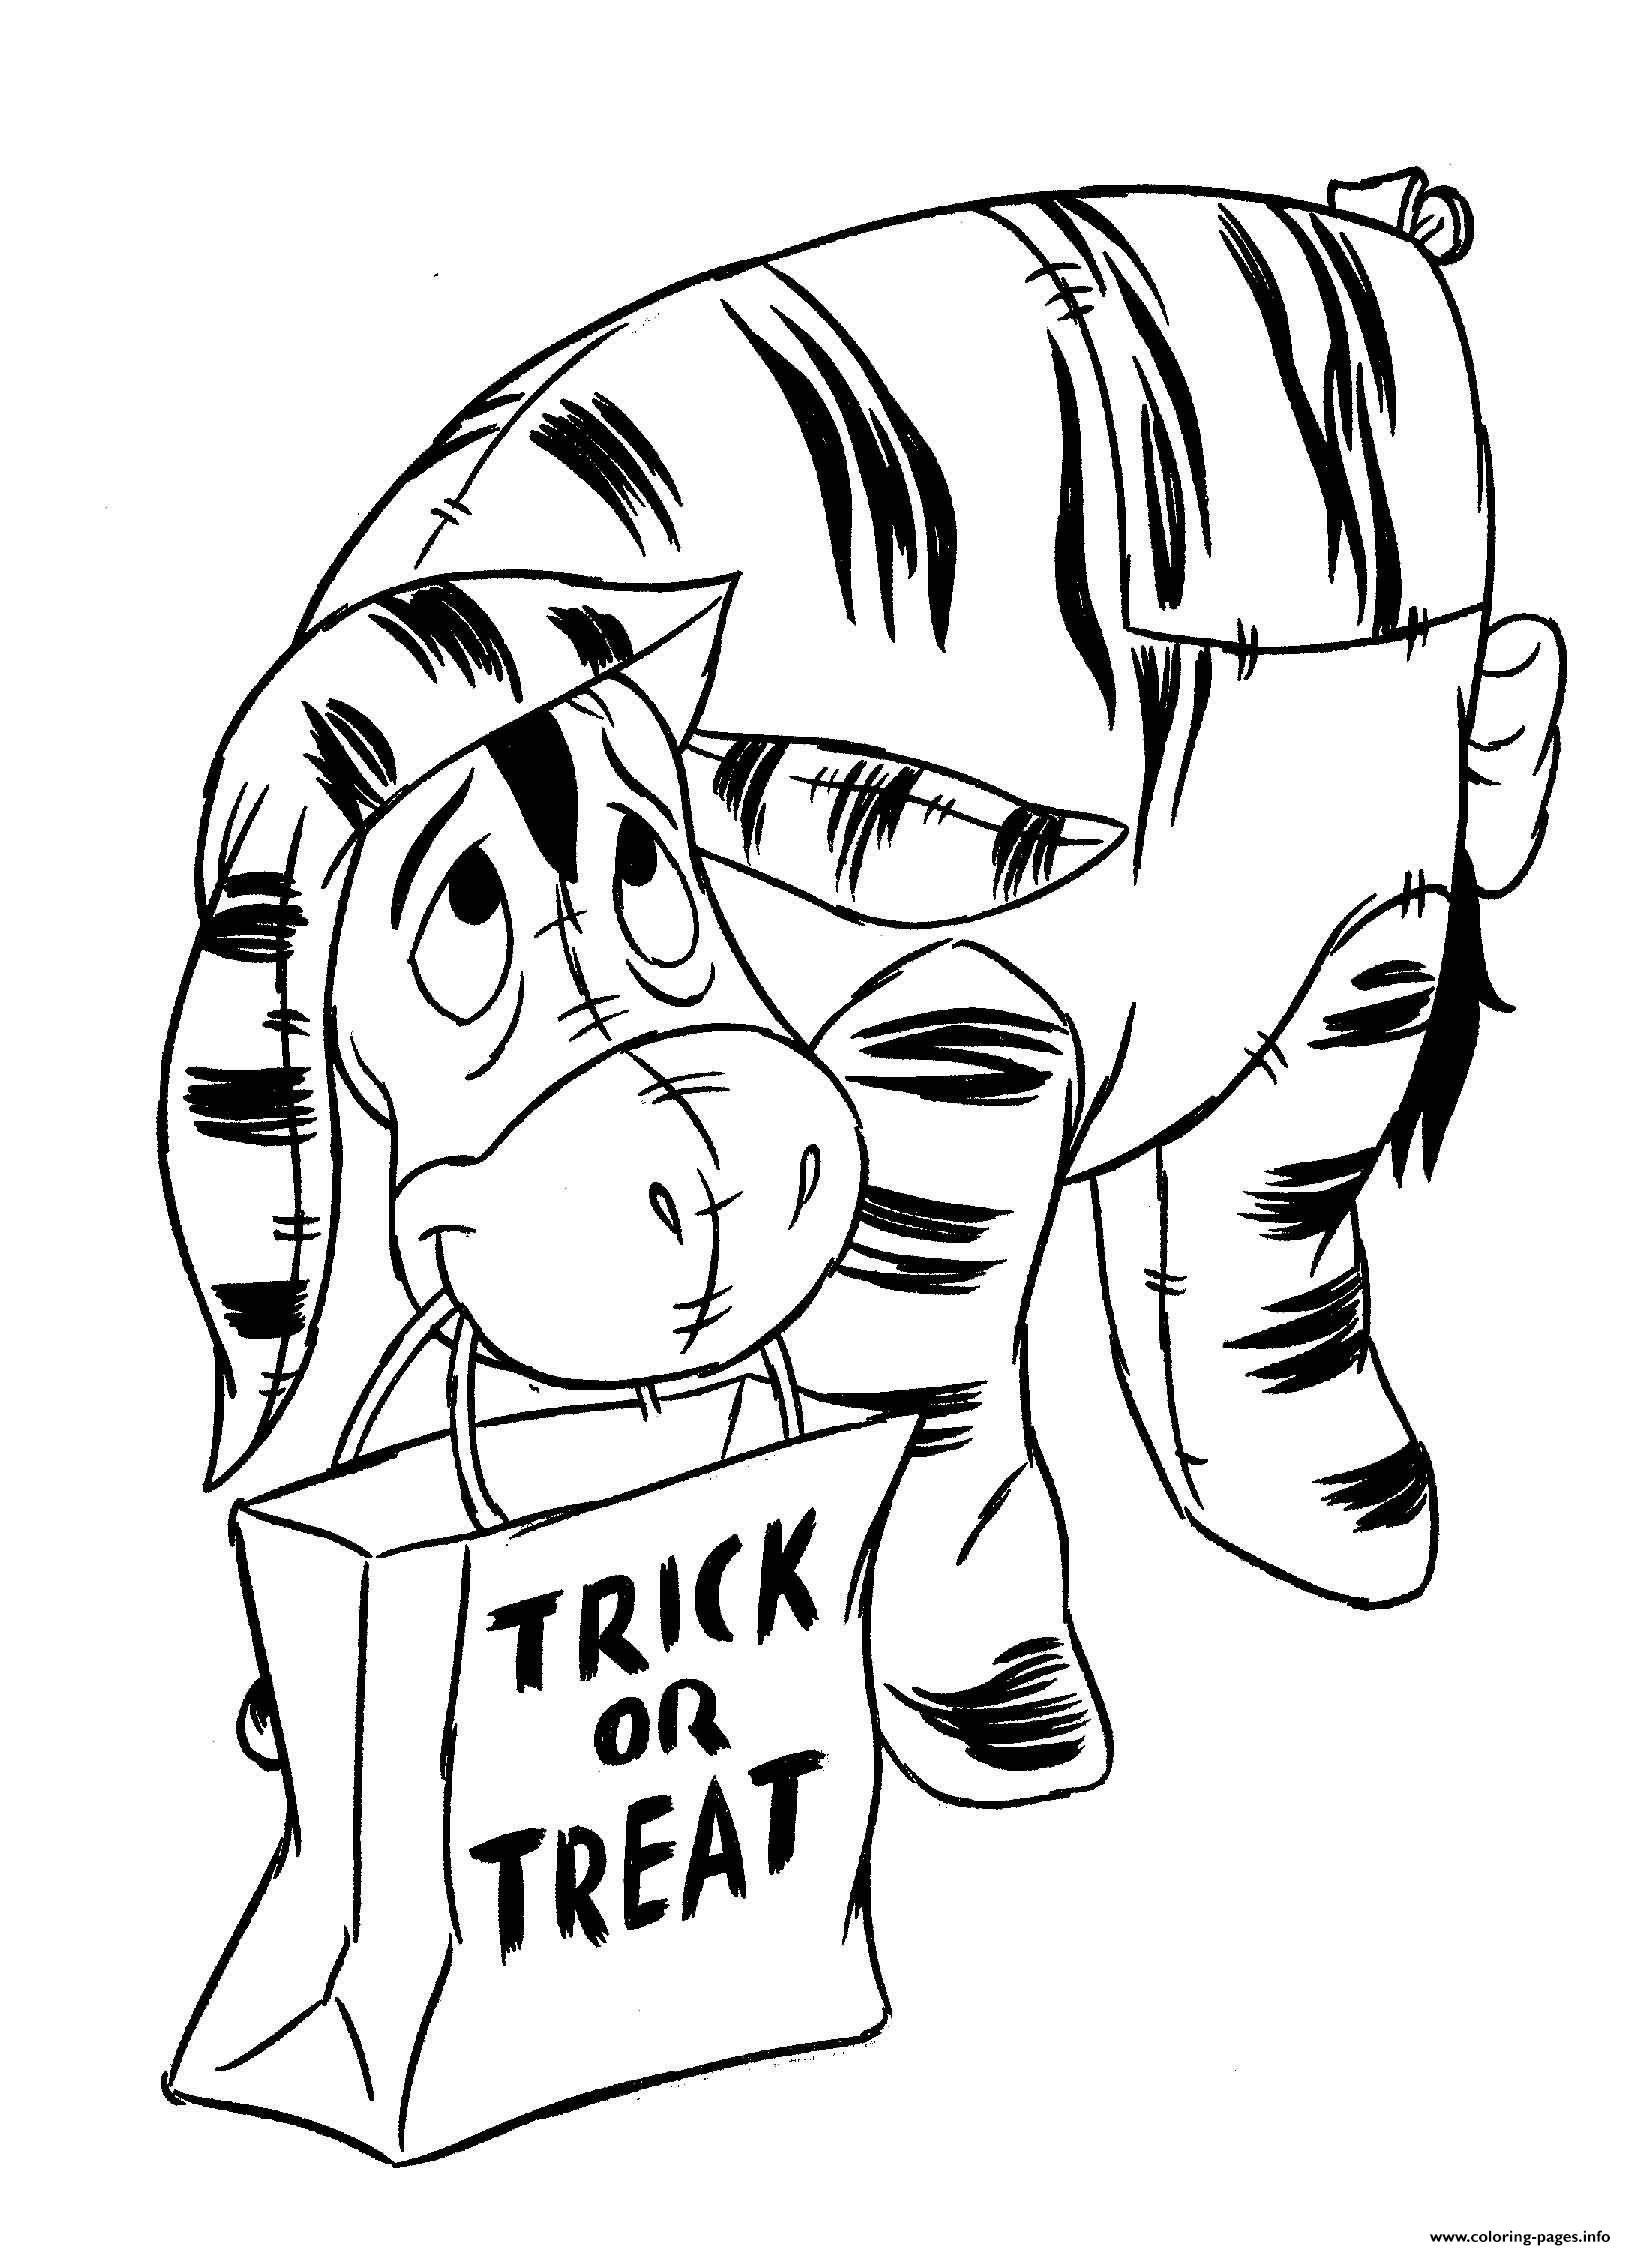 Trick Or Treat Coloring Pages Winnie The Pooh Halloween Trick Treat Coloring P In 2020 Halloween Coloring Book Halloween Coloring Pages Disney Halloween Coloring Pages